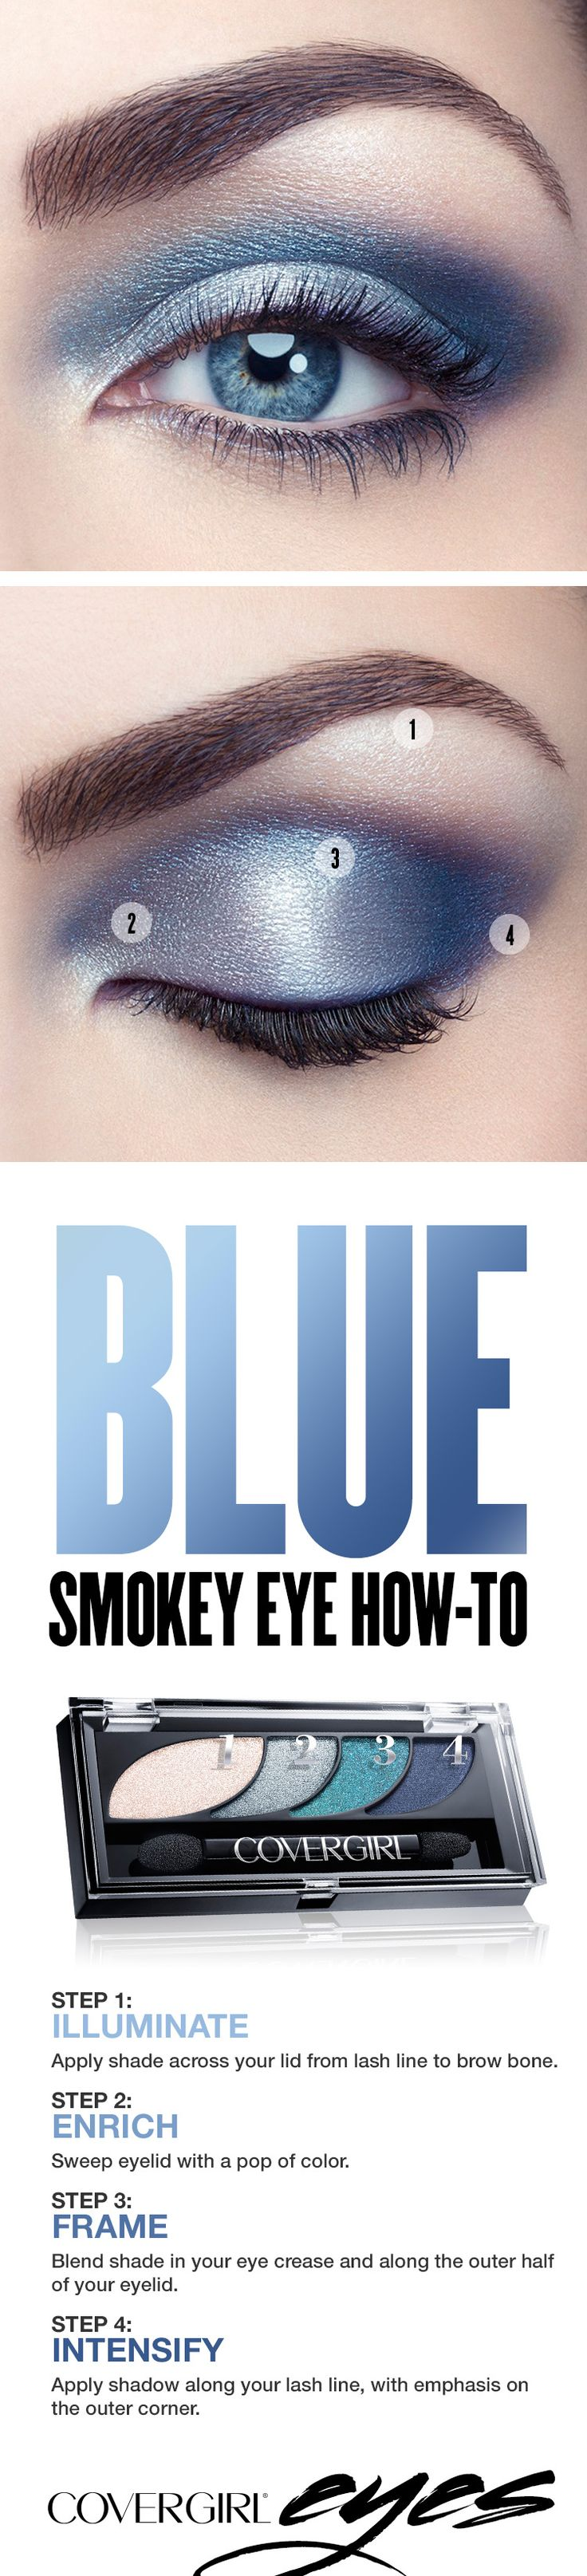 Try our simple step-by-step tutorial this holiday season for a dramatic blue smokey eye, featuring COVERGIRL Eyeshadow Quads in Breathtaking Blues. This makeup palette makes it easy to add festive color to your holiday look. Perfect for Christmas or New Year's Eve parties when you'd like to try something other than a standard black smokey eye.